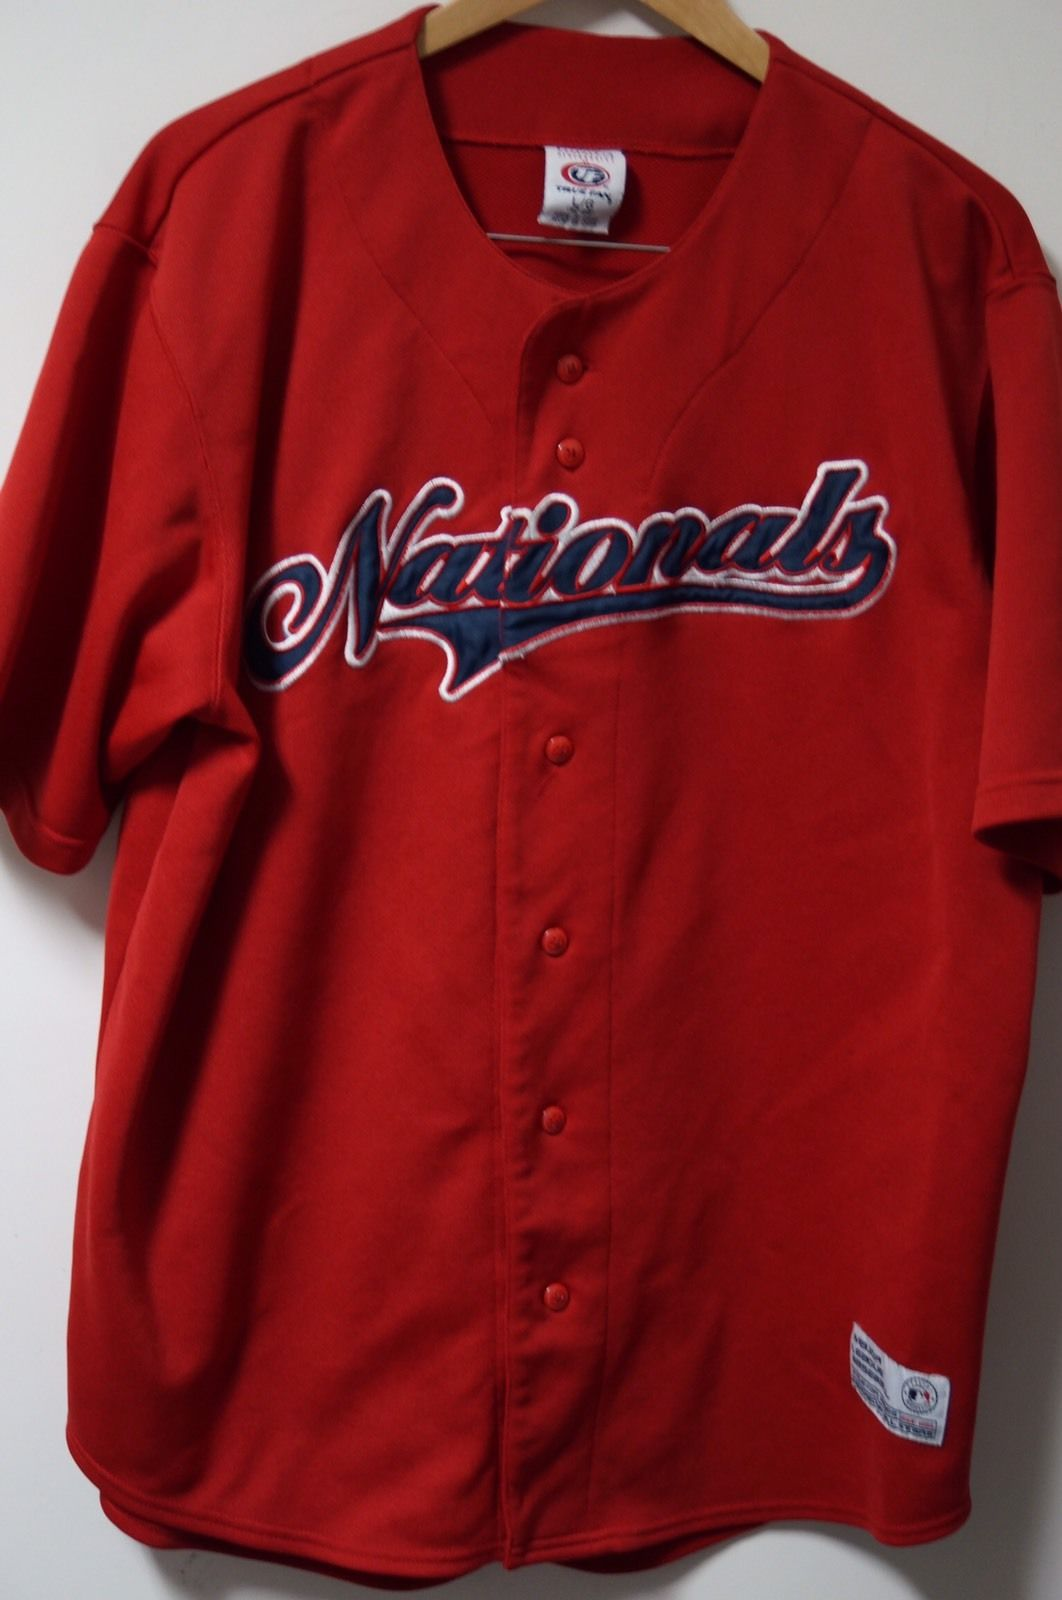 Men's True Fan Washington Nationals MLB Baseball Jersey Size L 42-44 Red